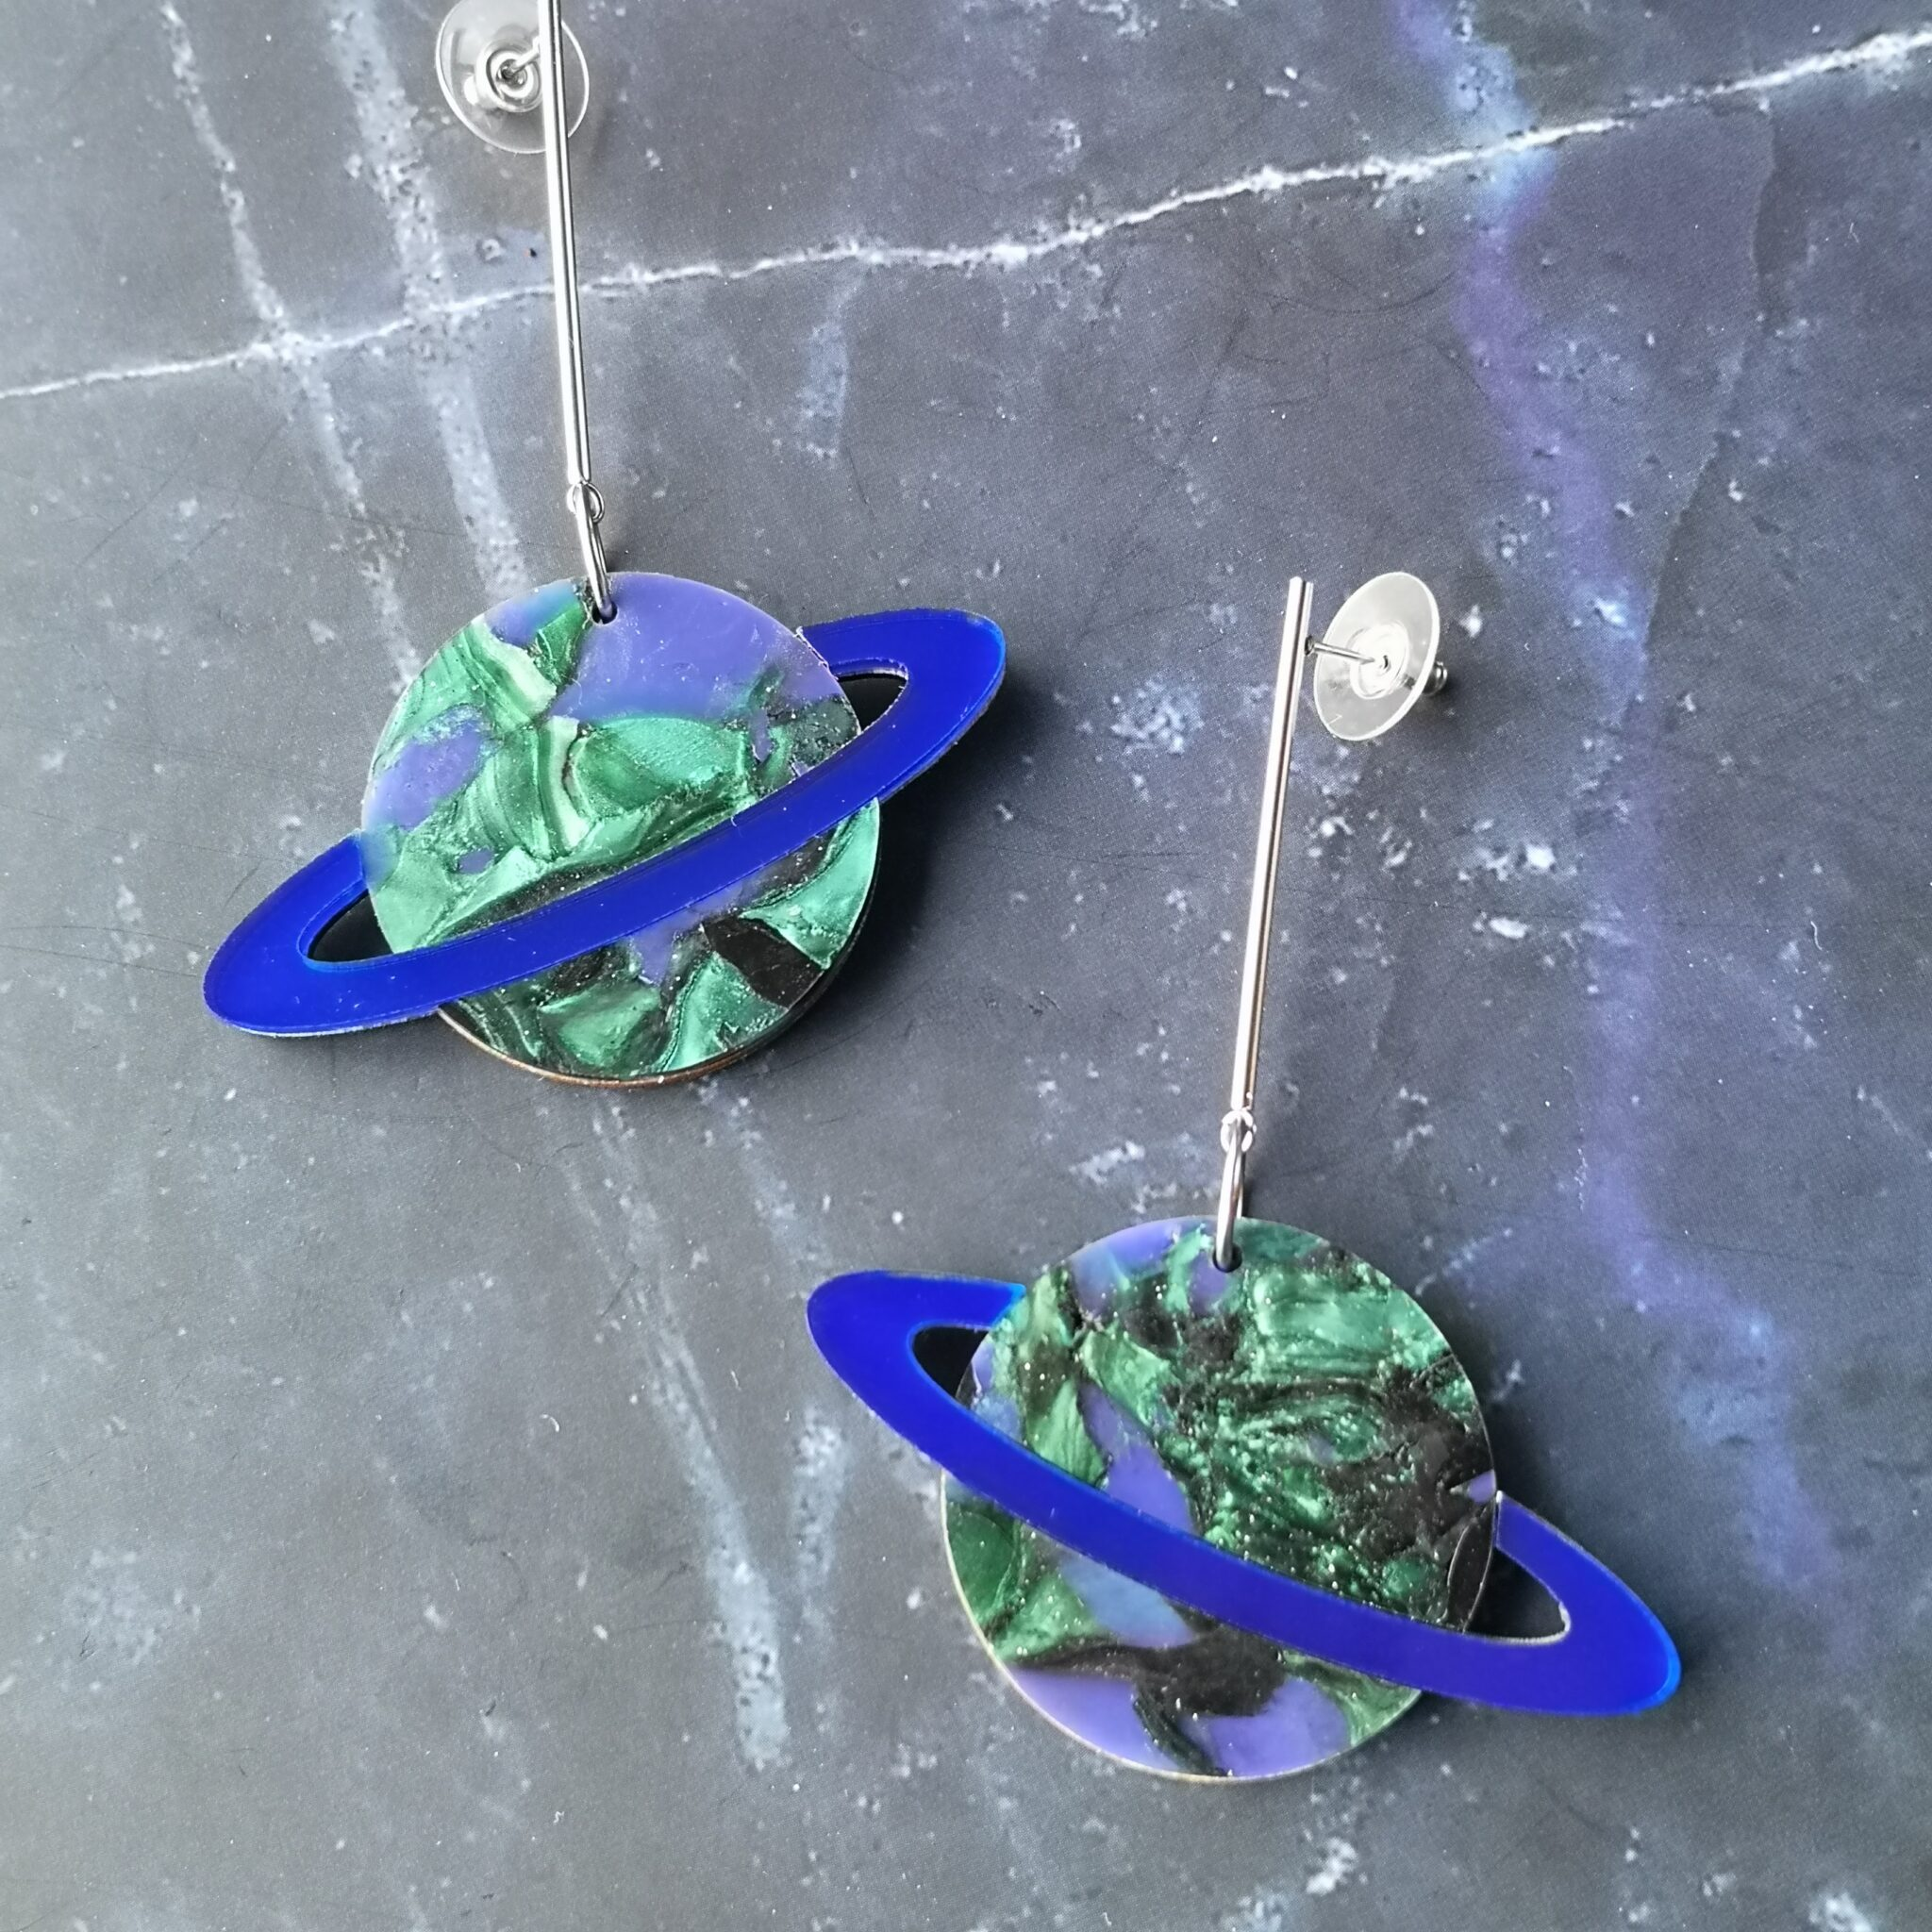 In Orbit Recycled Planet Earrings – Not Quite Earth 02 By Celestial Closet